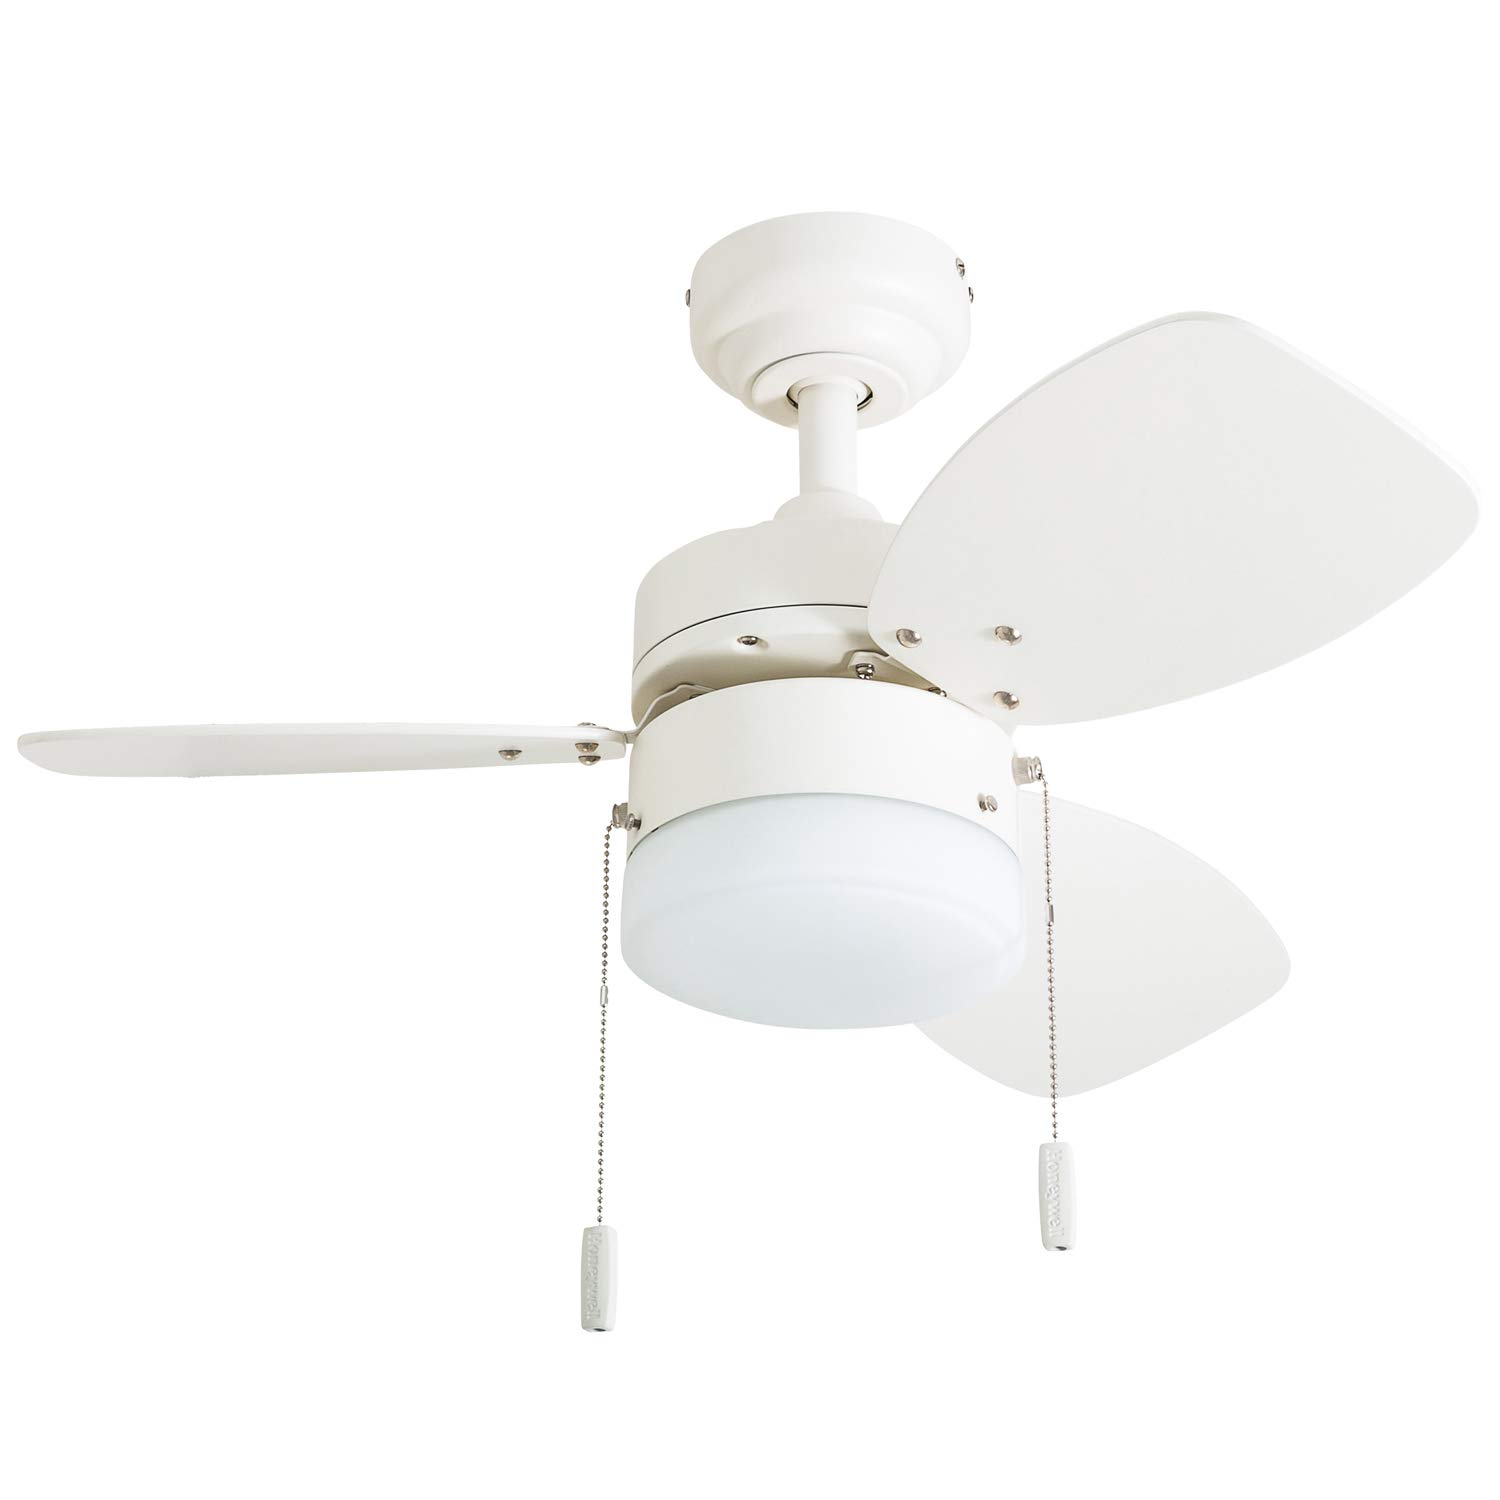 "Honeywell Ceiling Fans 50600-01 Ocean Breeze Contemporary, 30"" LED Frosted Light, Light Oak/Satin Nickel Finish Blades, White"